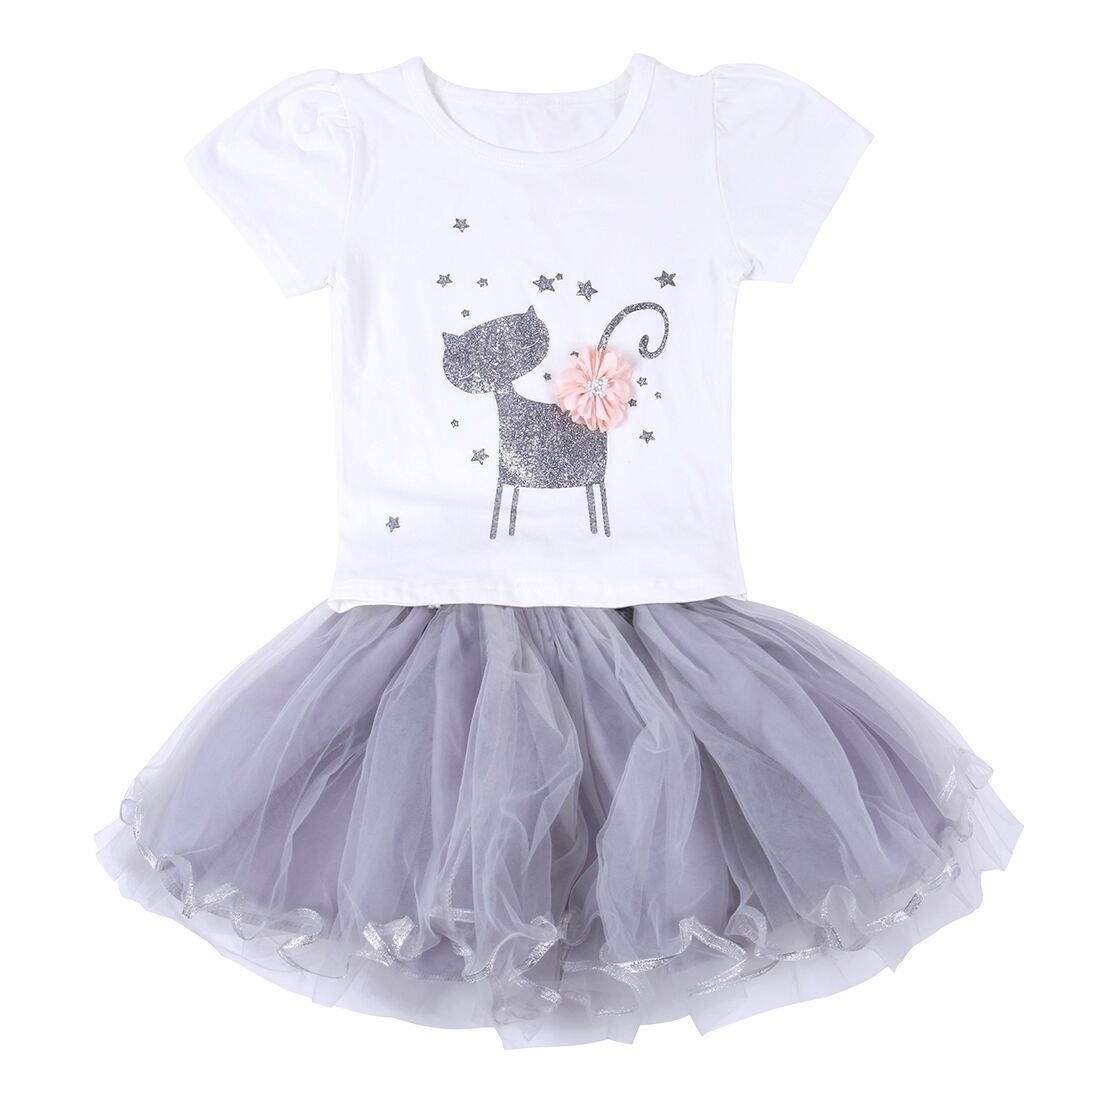 Neeseelily Baby Girls Clothes 2pc Cute T-Shirt+ Tulle Tutu Skirt Cartoon Outfit Set O3-KJV1-4XCR